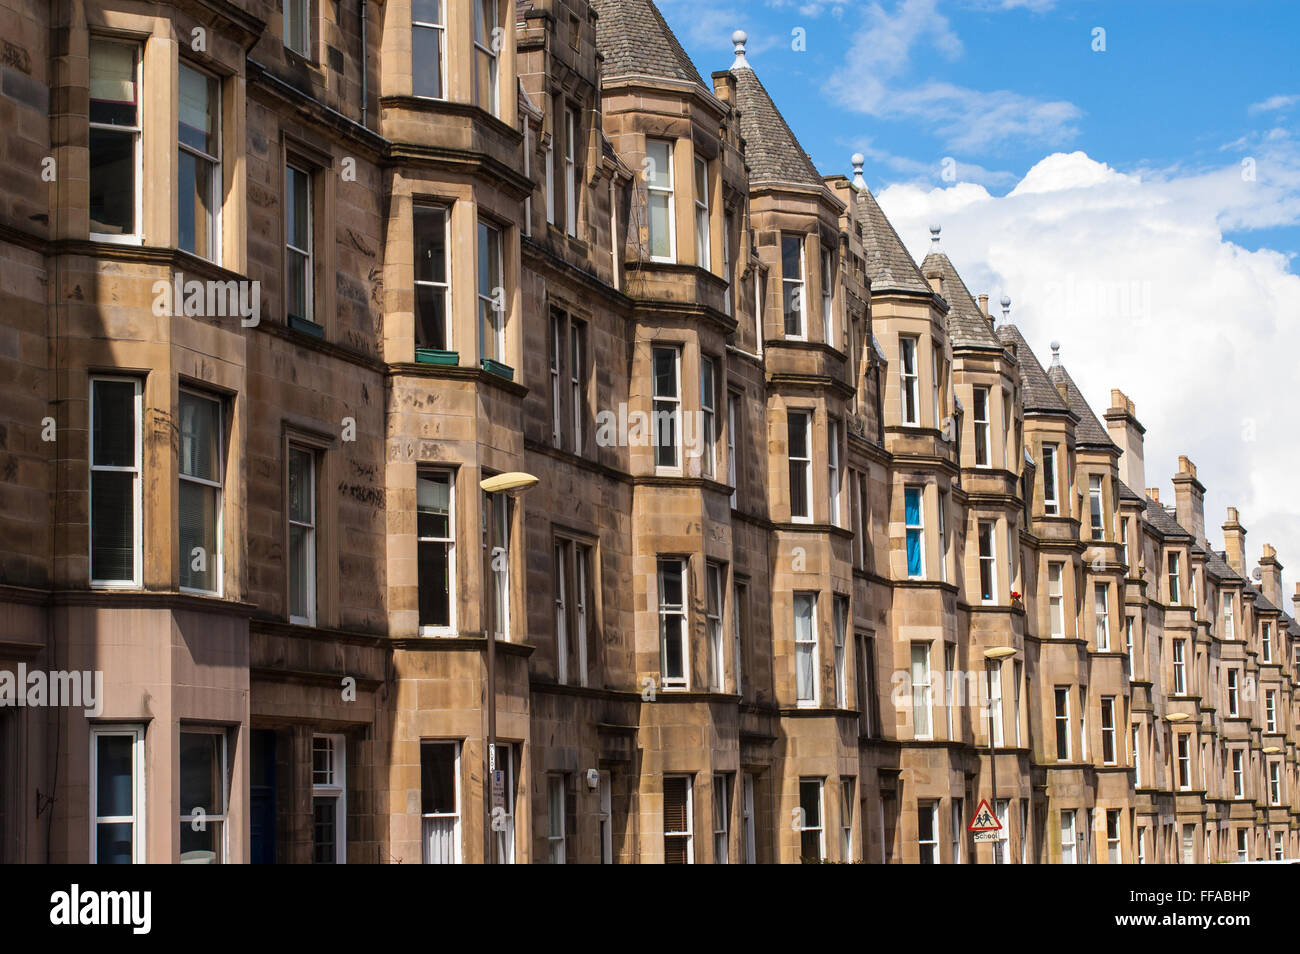 View of Victorian tenement housing in the West End of Edinburgh, Morningside. Stock Photo